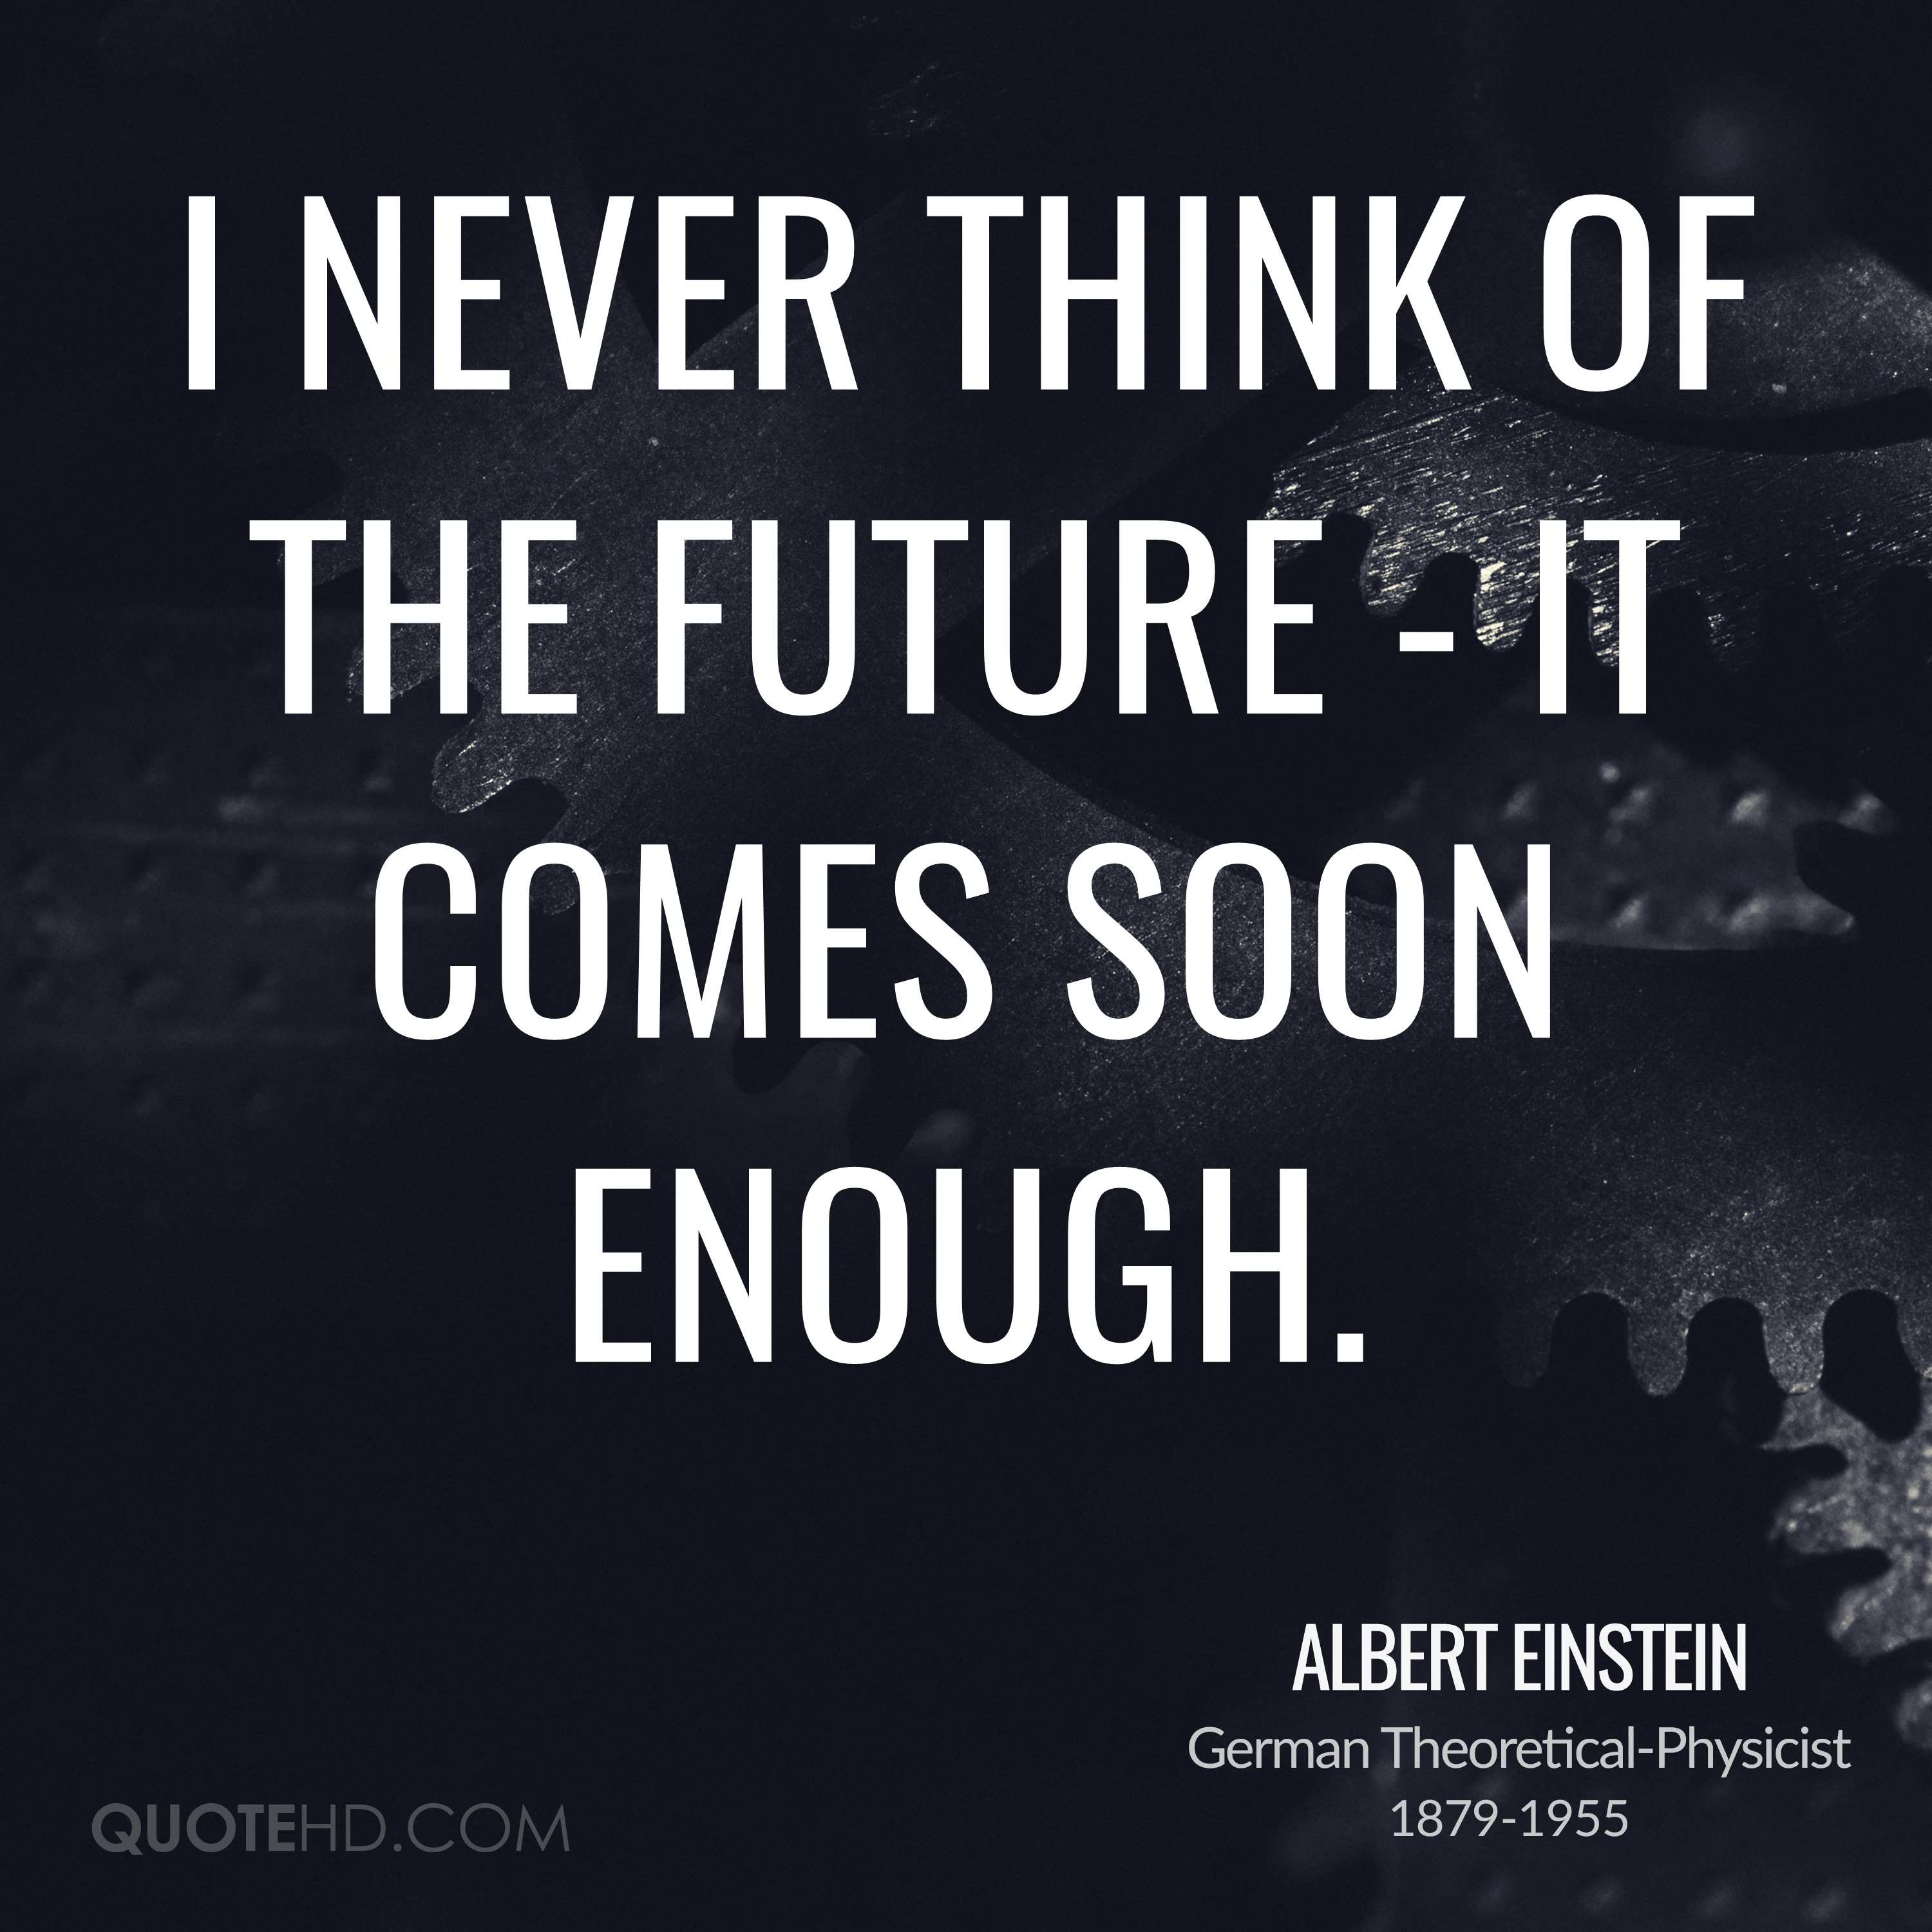 I never think of the future - it comes soon enough.